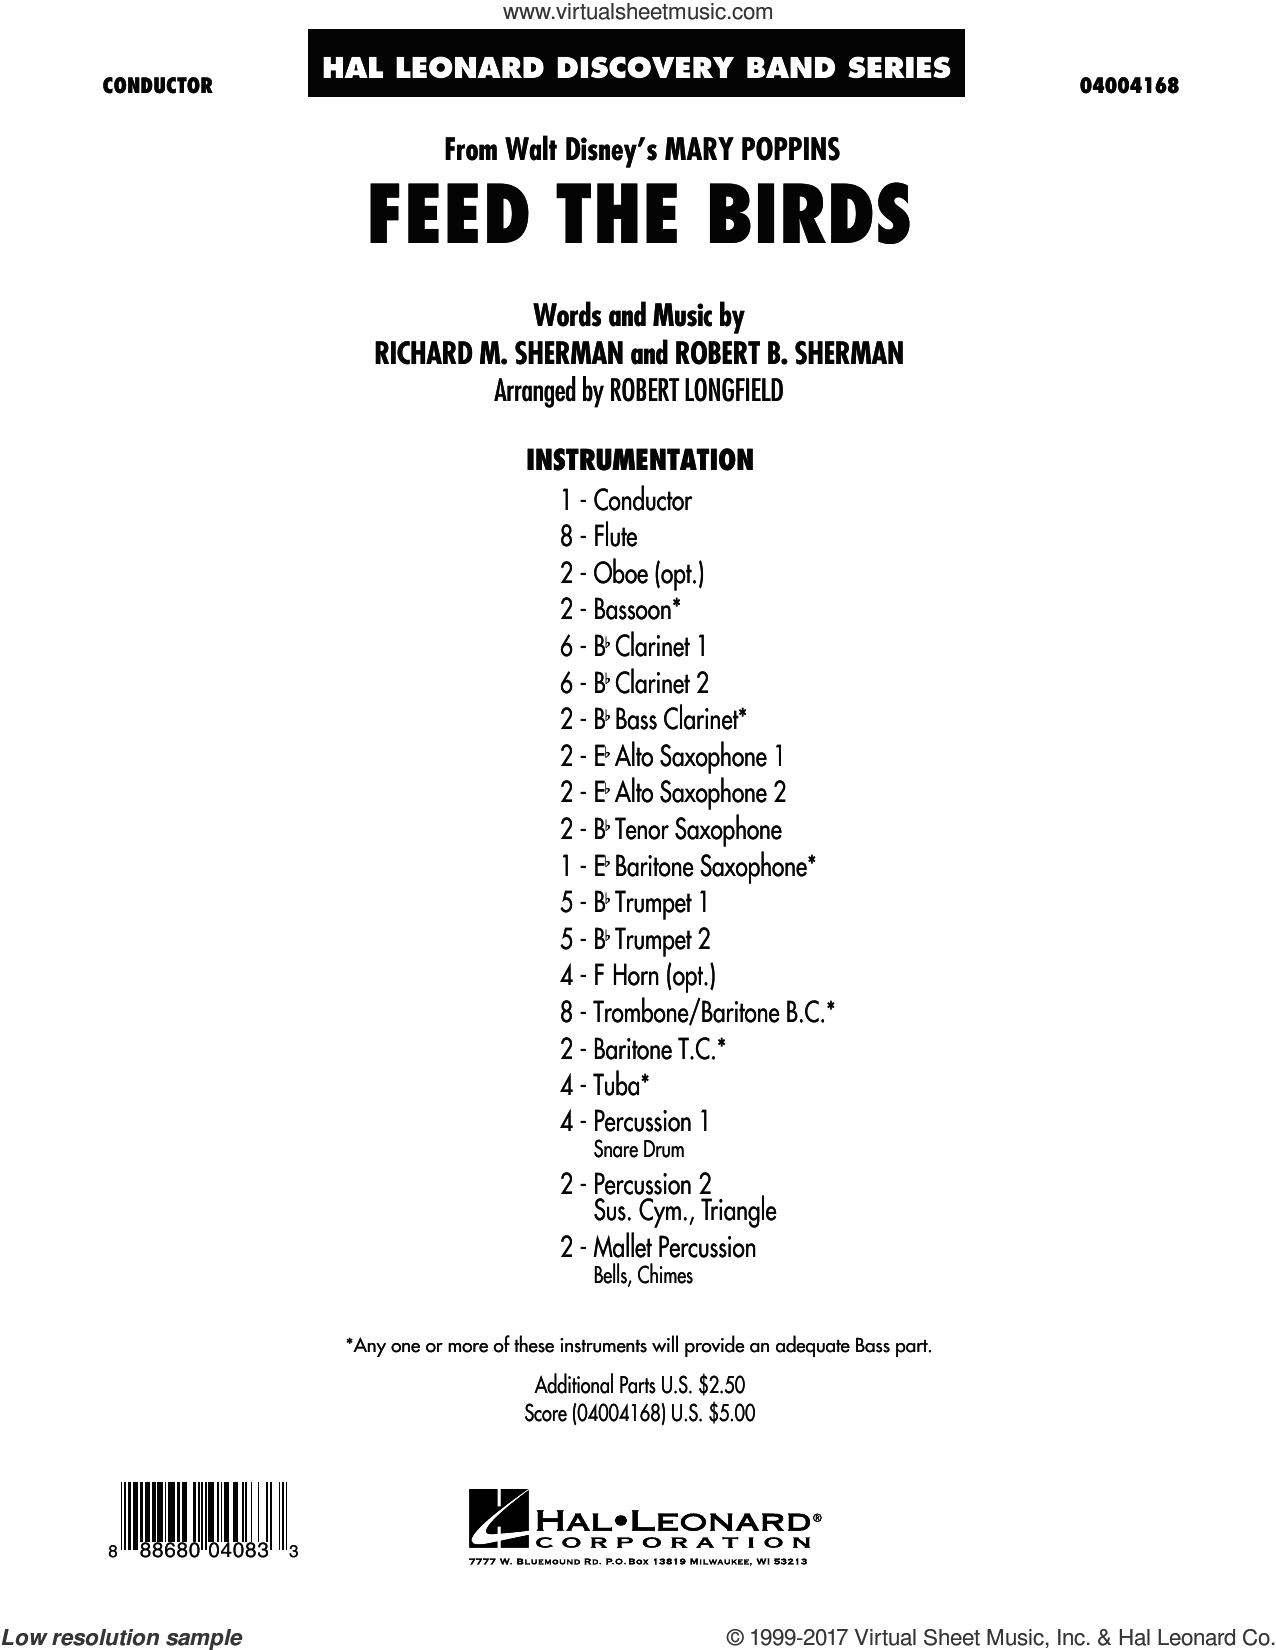 Feed the Birds (from Mary Poppins) (COMPLETE) sheet music for concert band by Richard M. Sherman, Robert B. Sherman and Robert Longfield, intermediate skill level